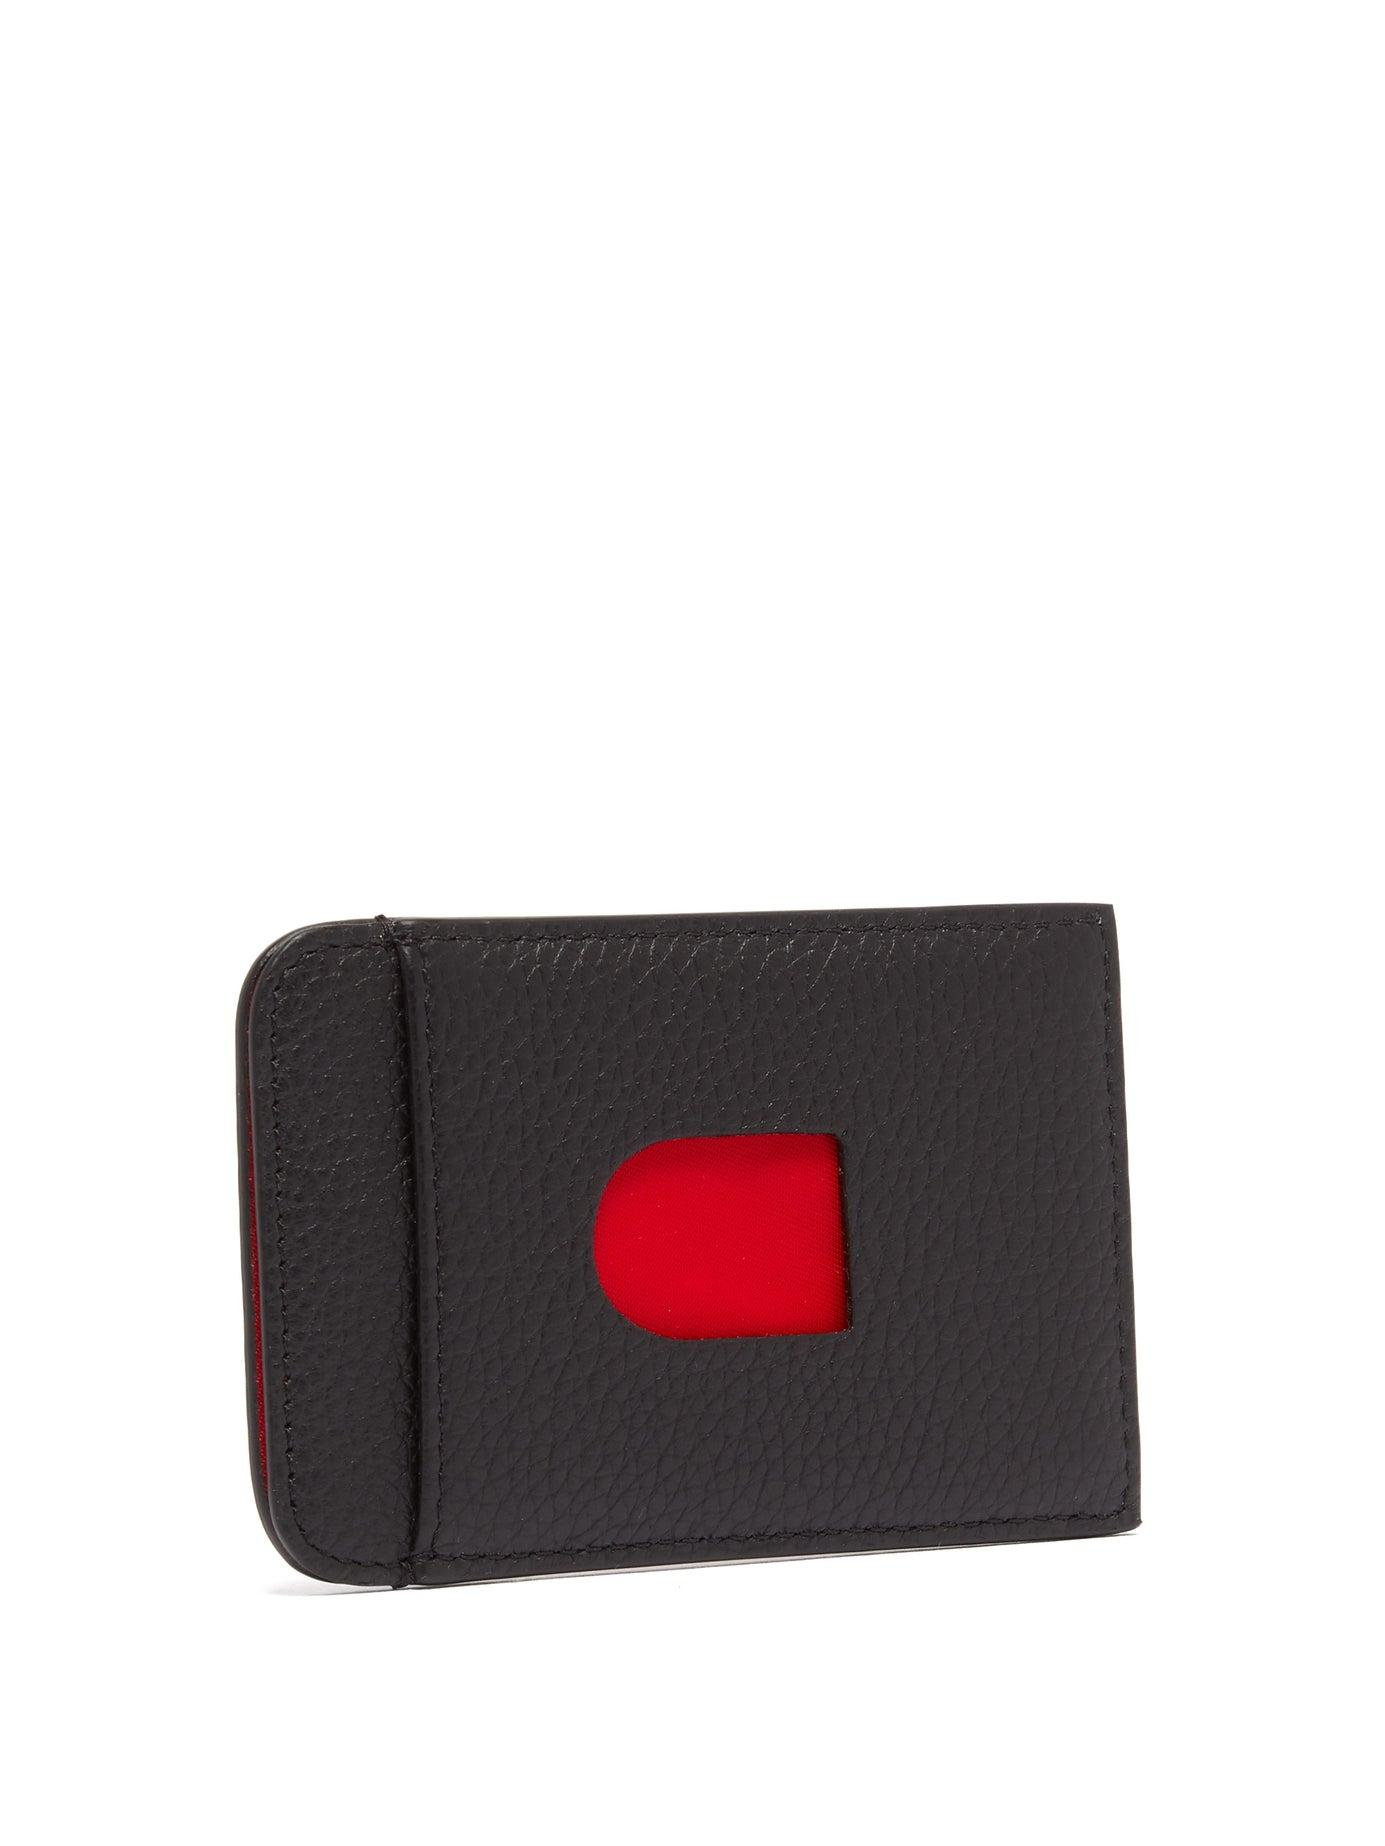 c44cda97777 Christian Louboutin Loubislide Rubber Inlay Leather Cardholder in ...